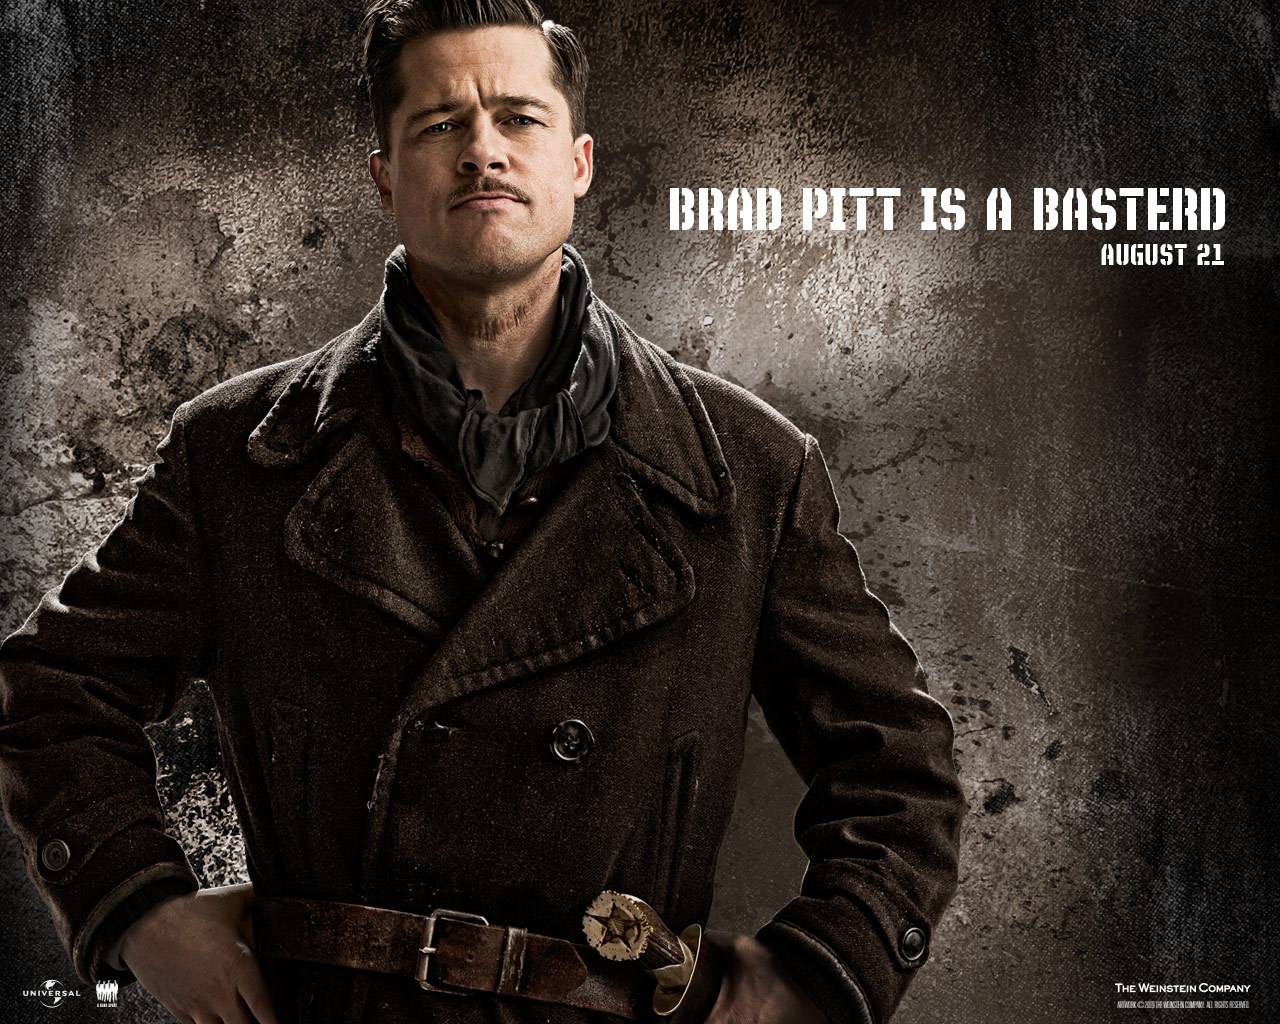 imdb inglorious bastards images about imdb snapshot riley keough brad pitt inglorious bastards financeandbusiness brad pitt imdb inglourious basterds